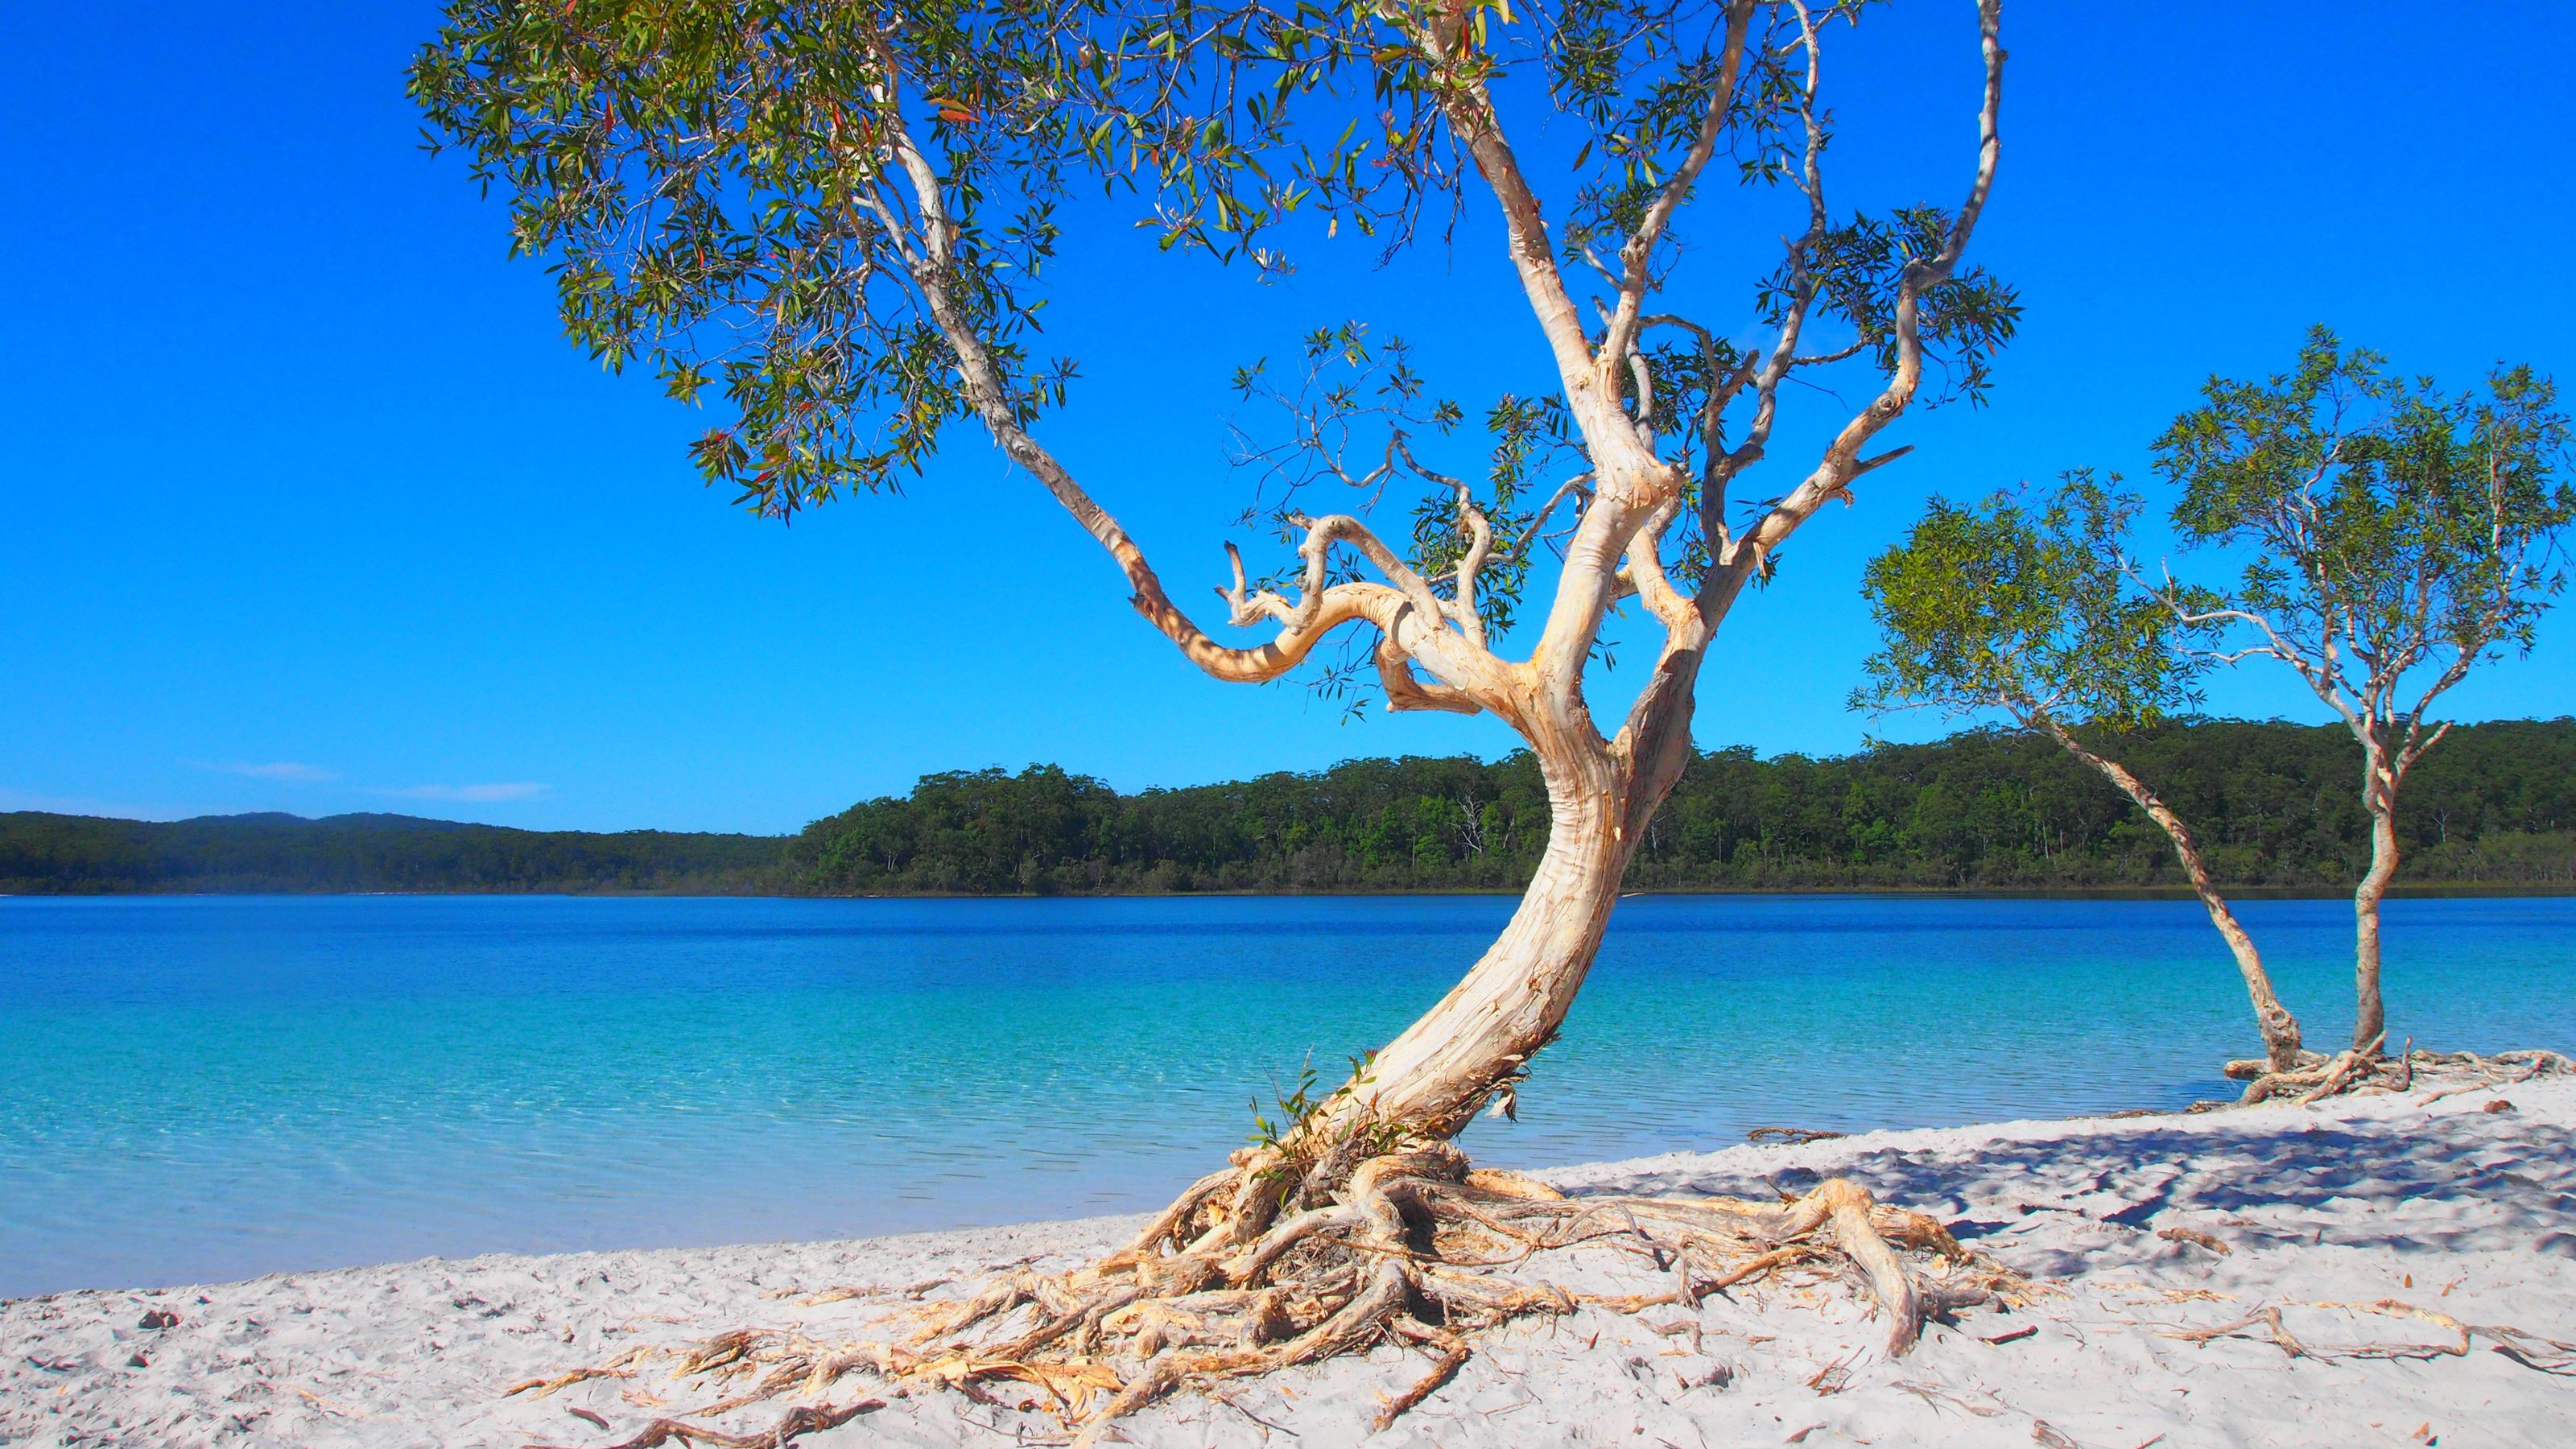 View of the Fraser Island on the Sunshine Coast during the day